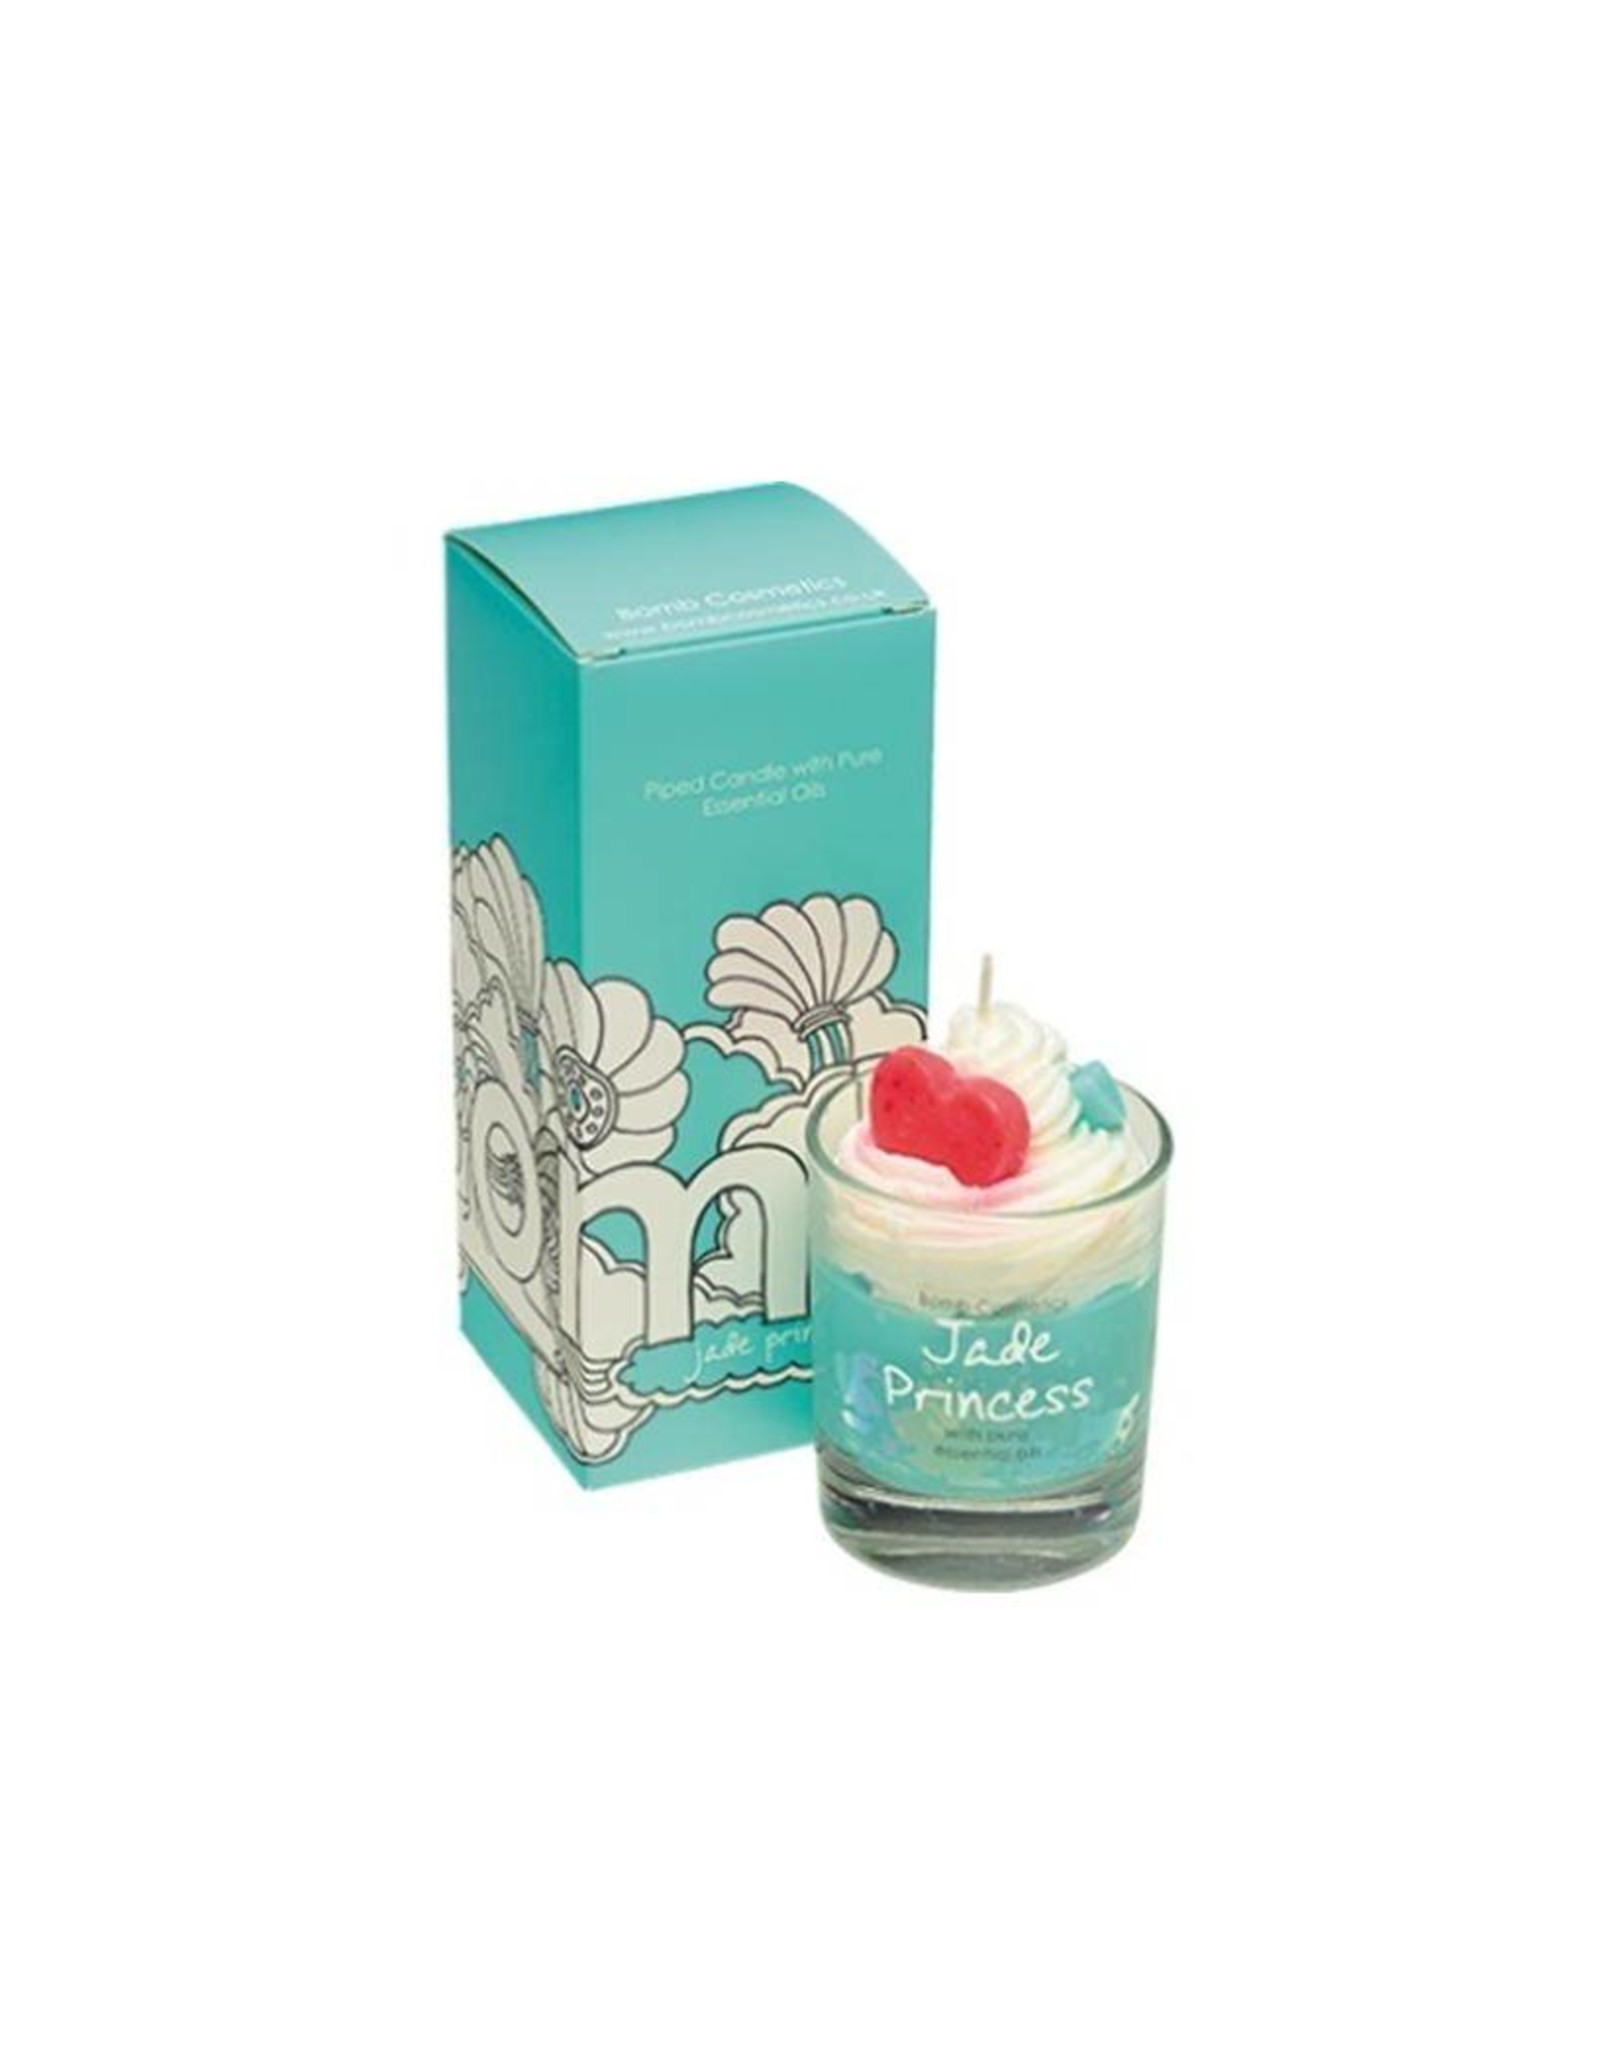 Bomb Cosmetics Jade Princess Whipped Piped Candle - Body & Soap